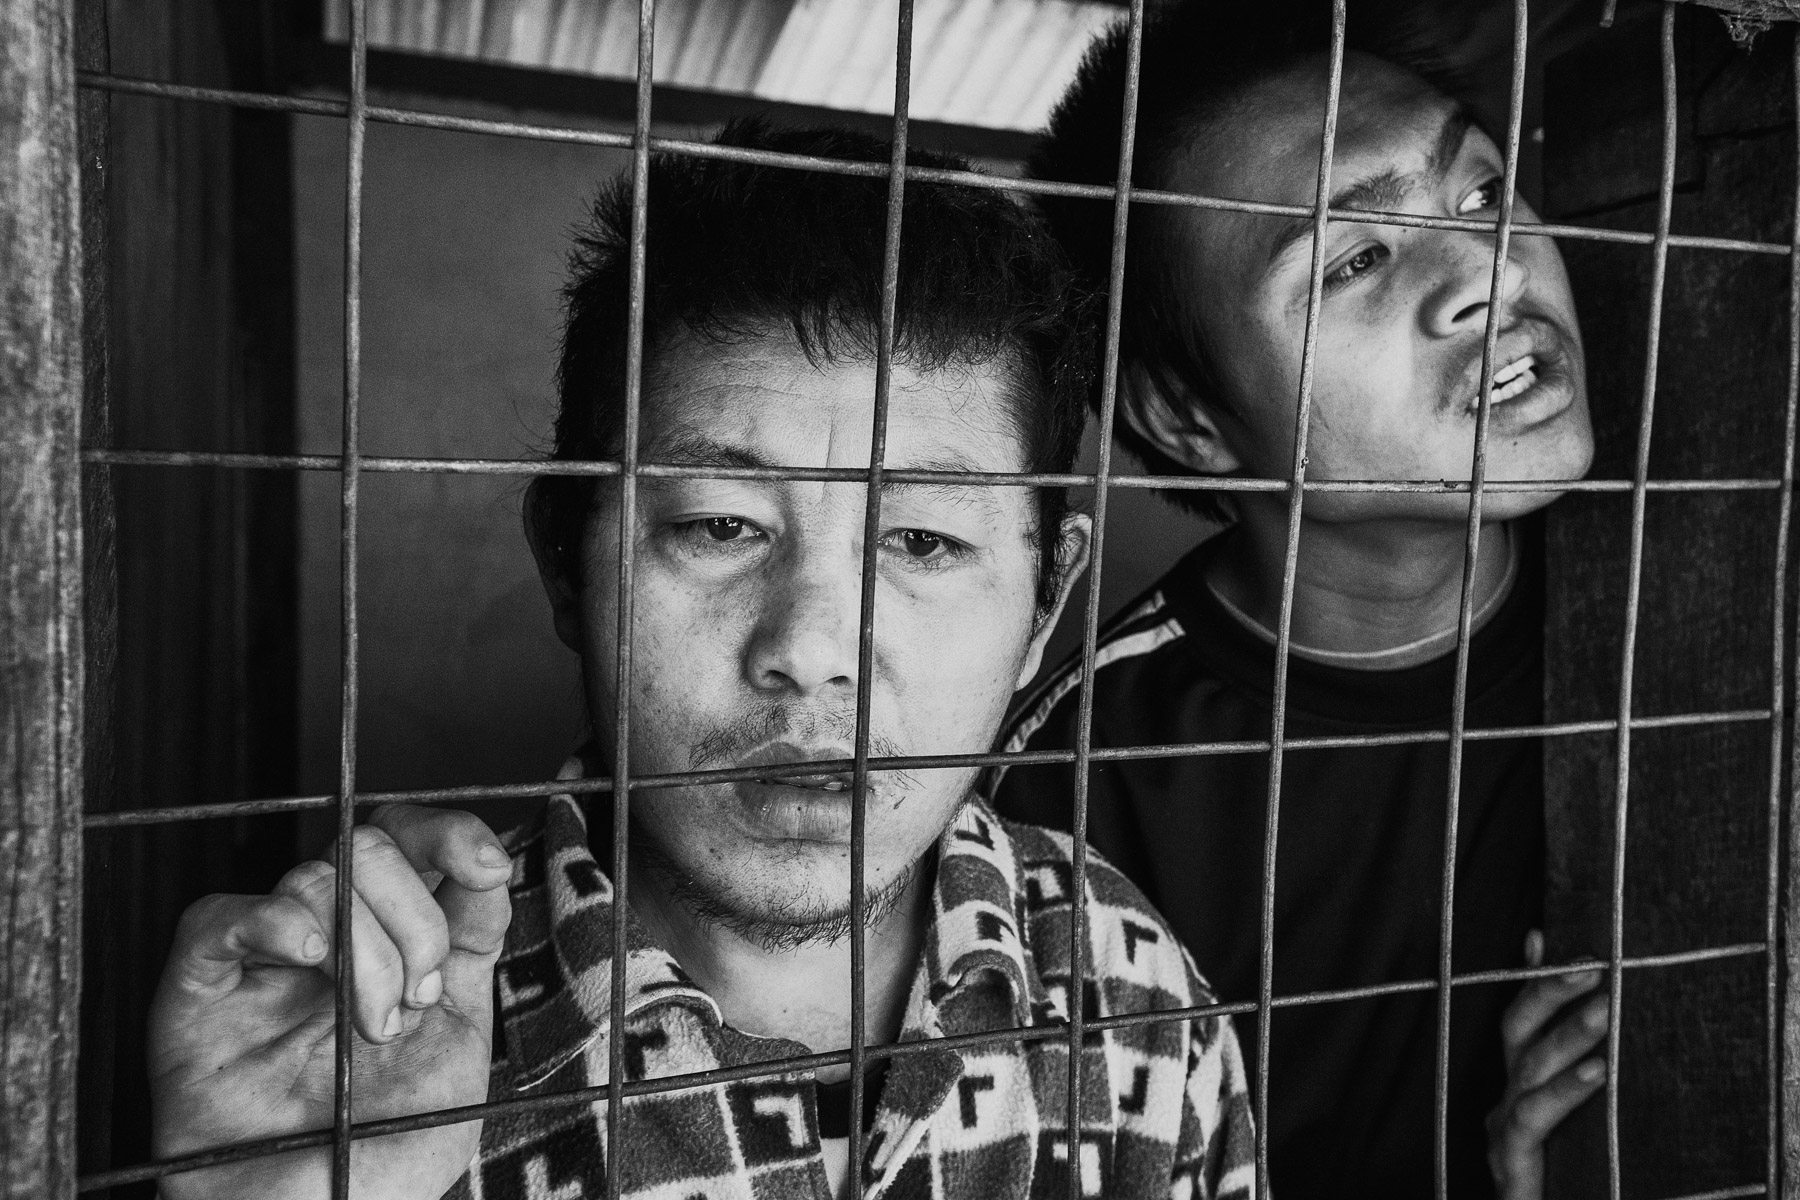 Two mentally disabled men are kept behind bars at a facility in northern Shan State, Myanmar.